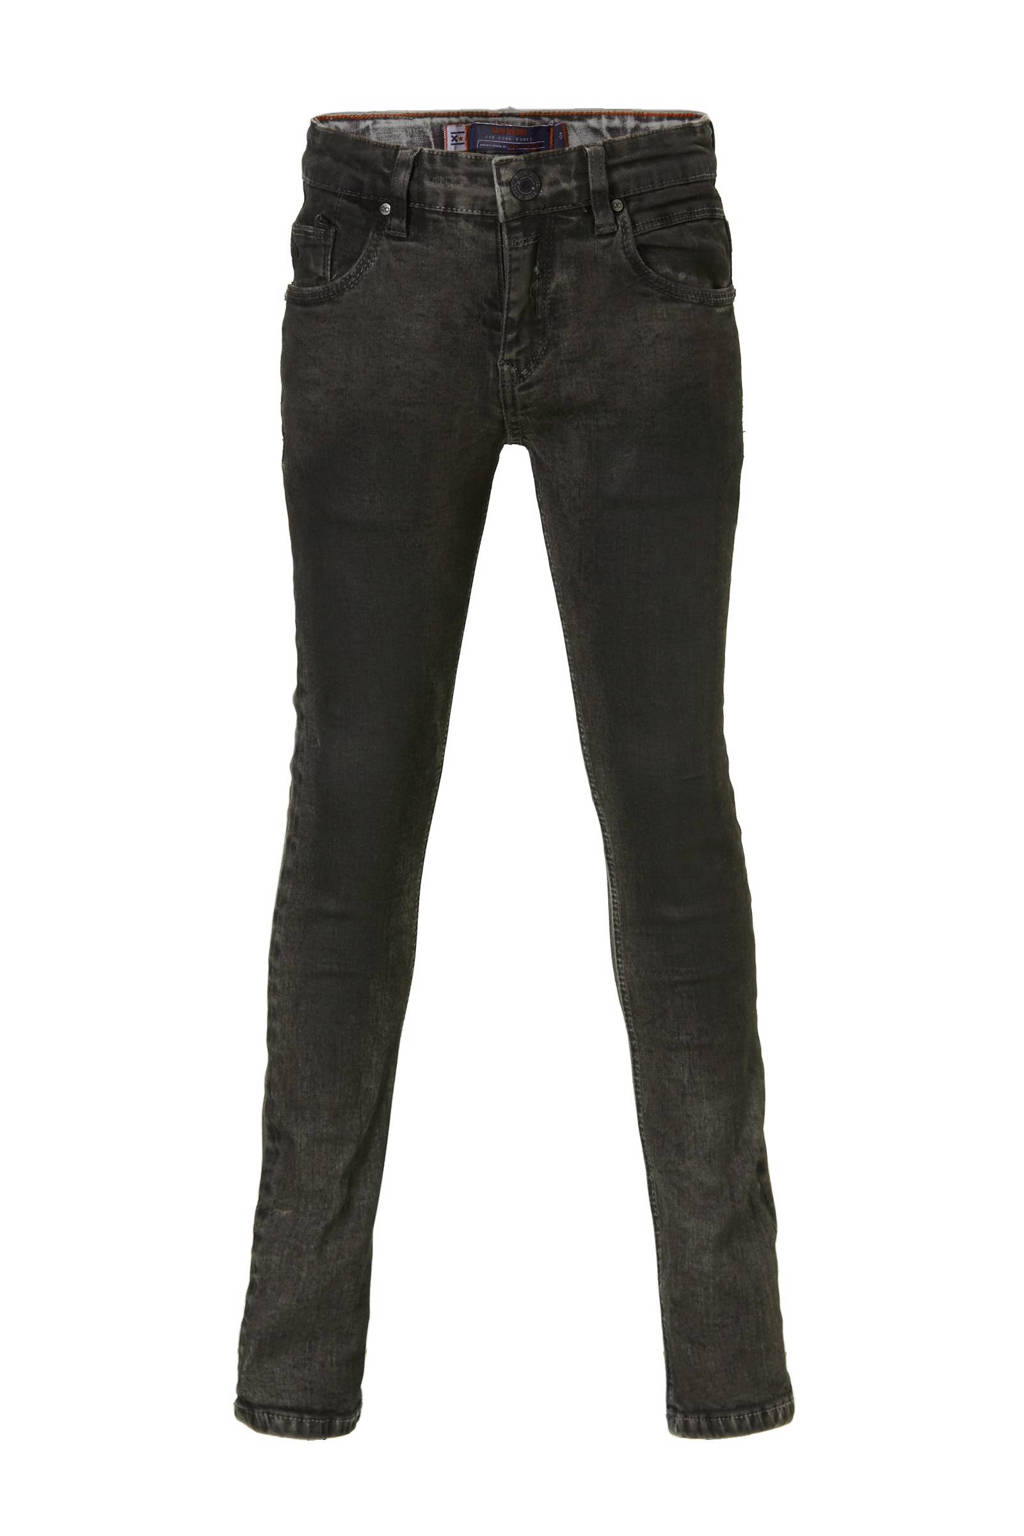 Blue Rebel Cave skinny fit jeans, Grey Wash